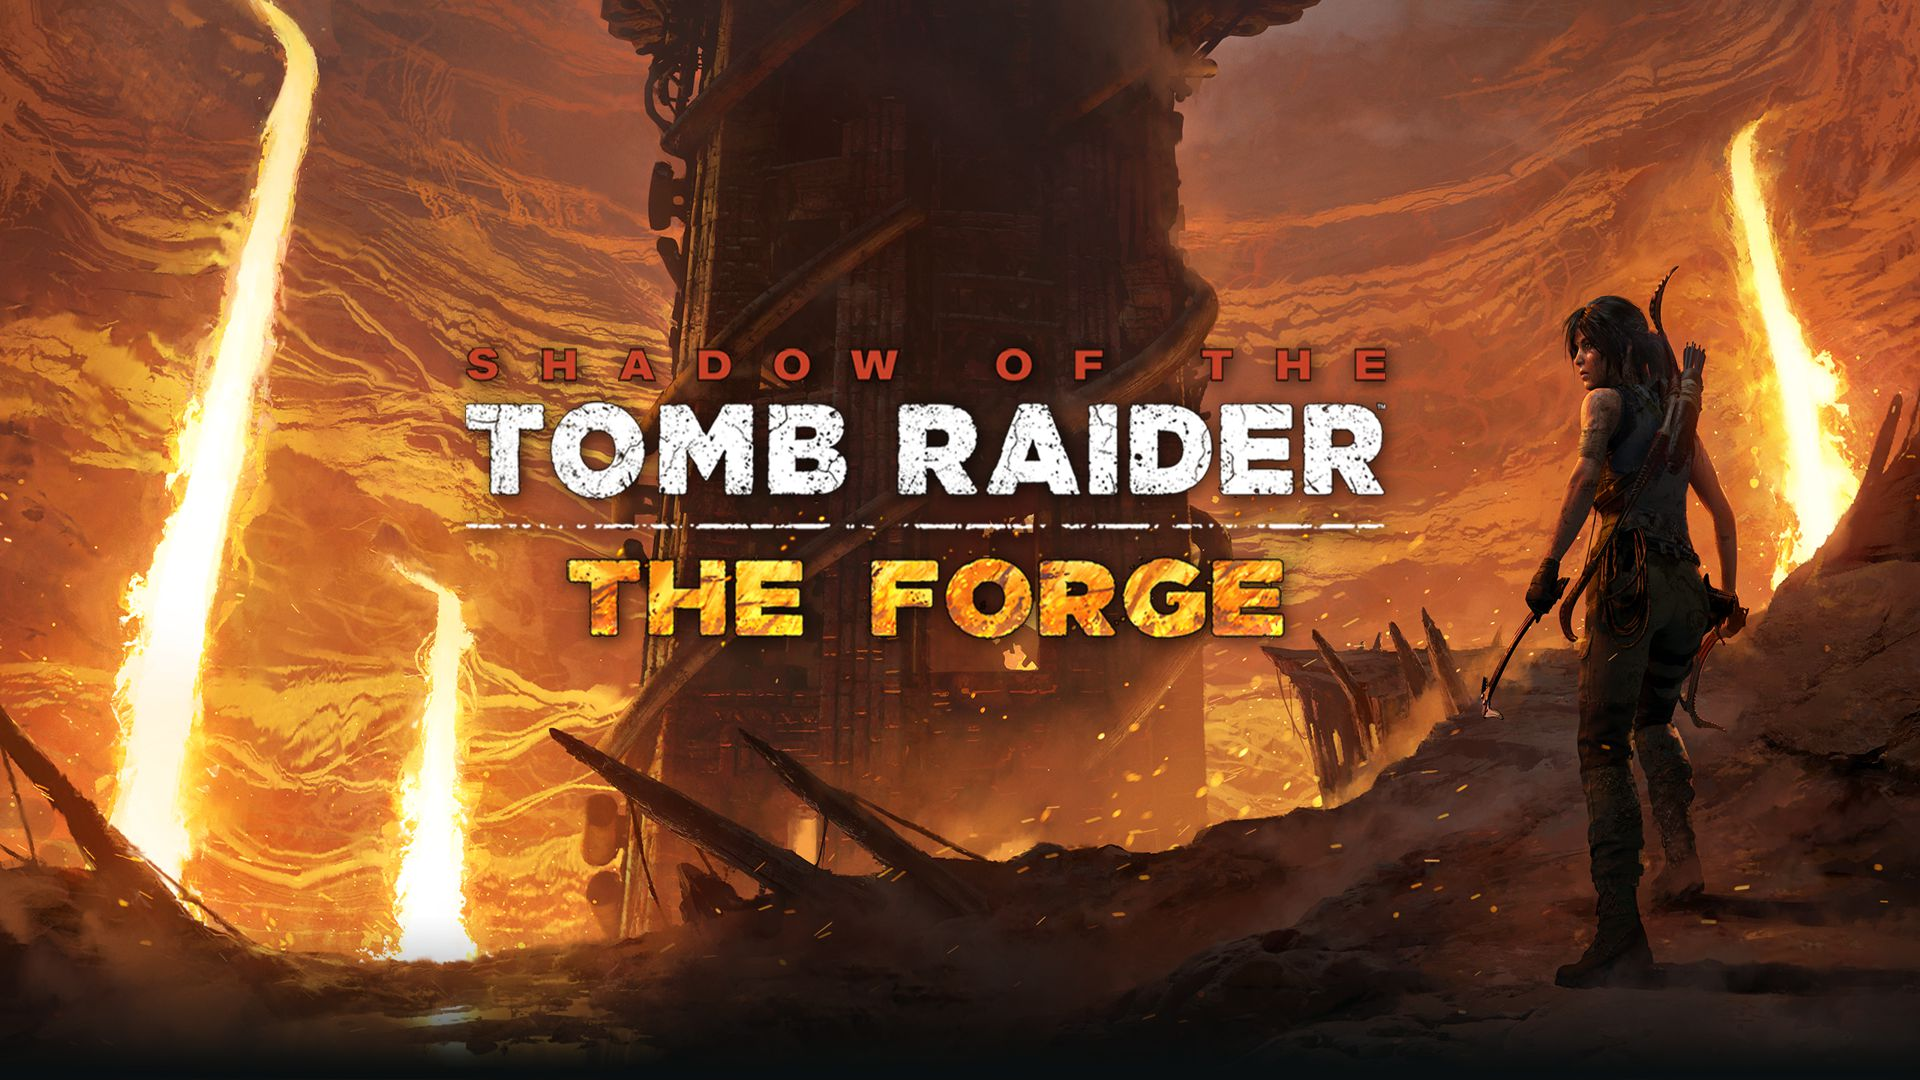 Shadow of the Tomb Raider - The Forge Principal